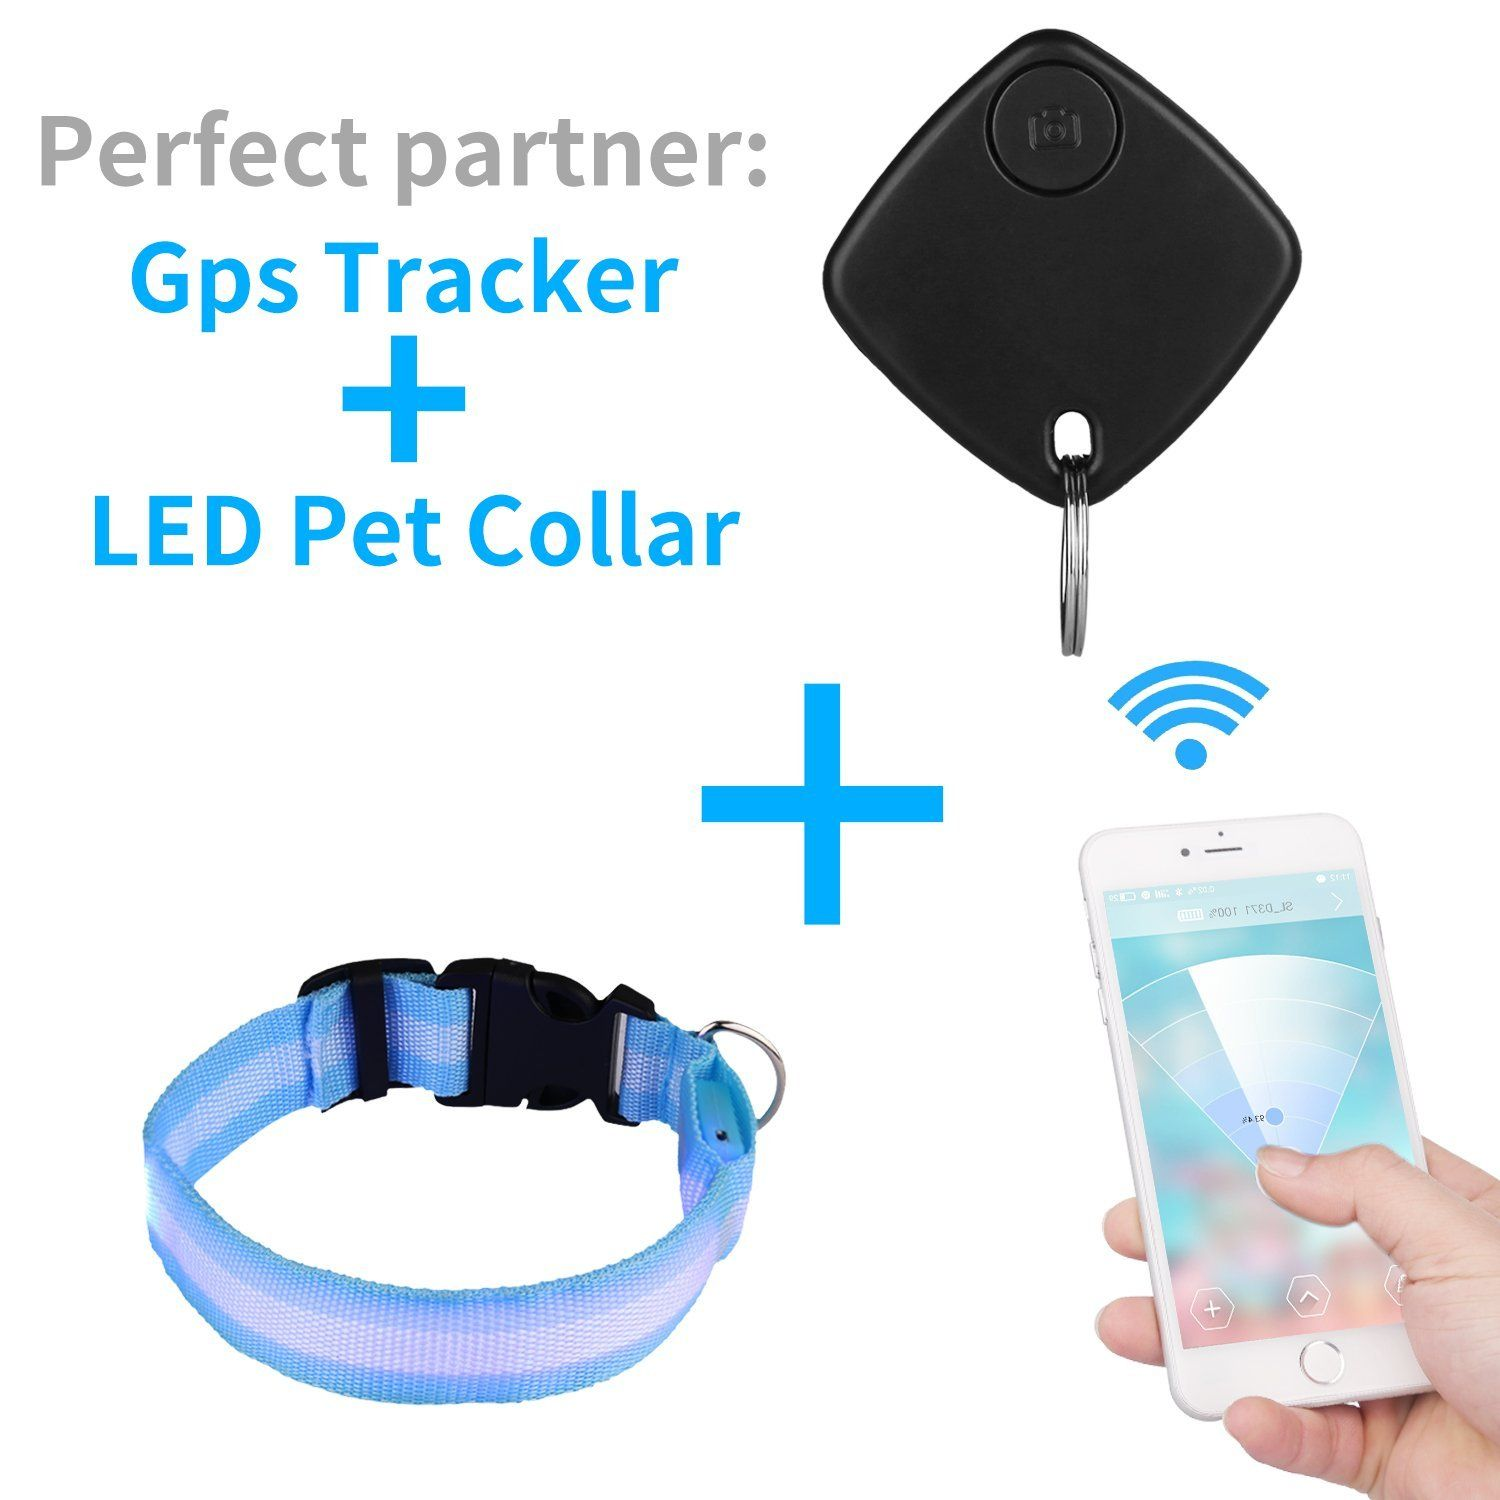 Topperone LED Pet Blue Collar and Black Pet Finder and